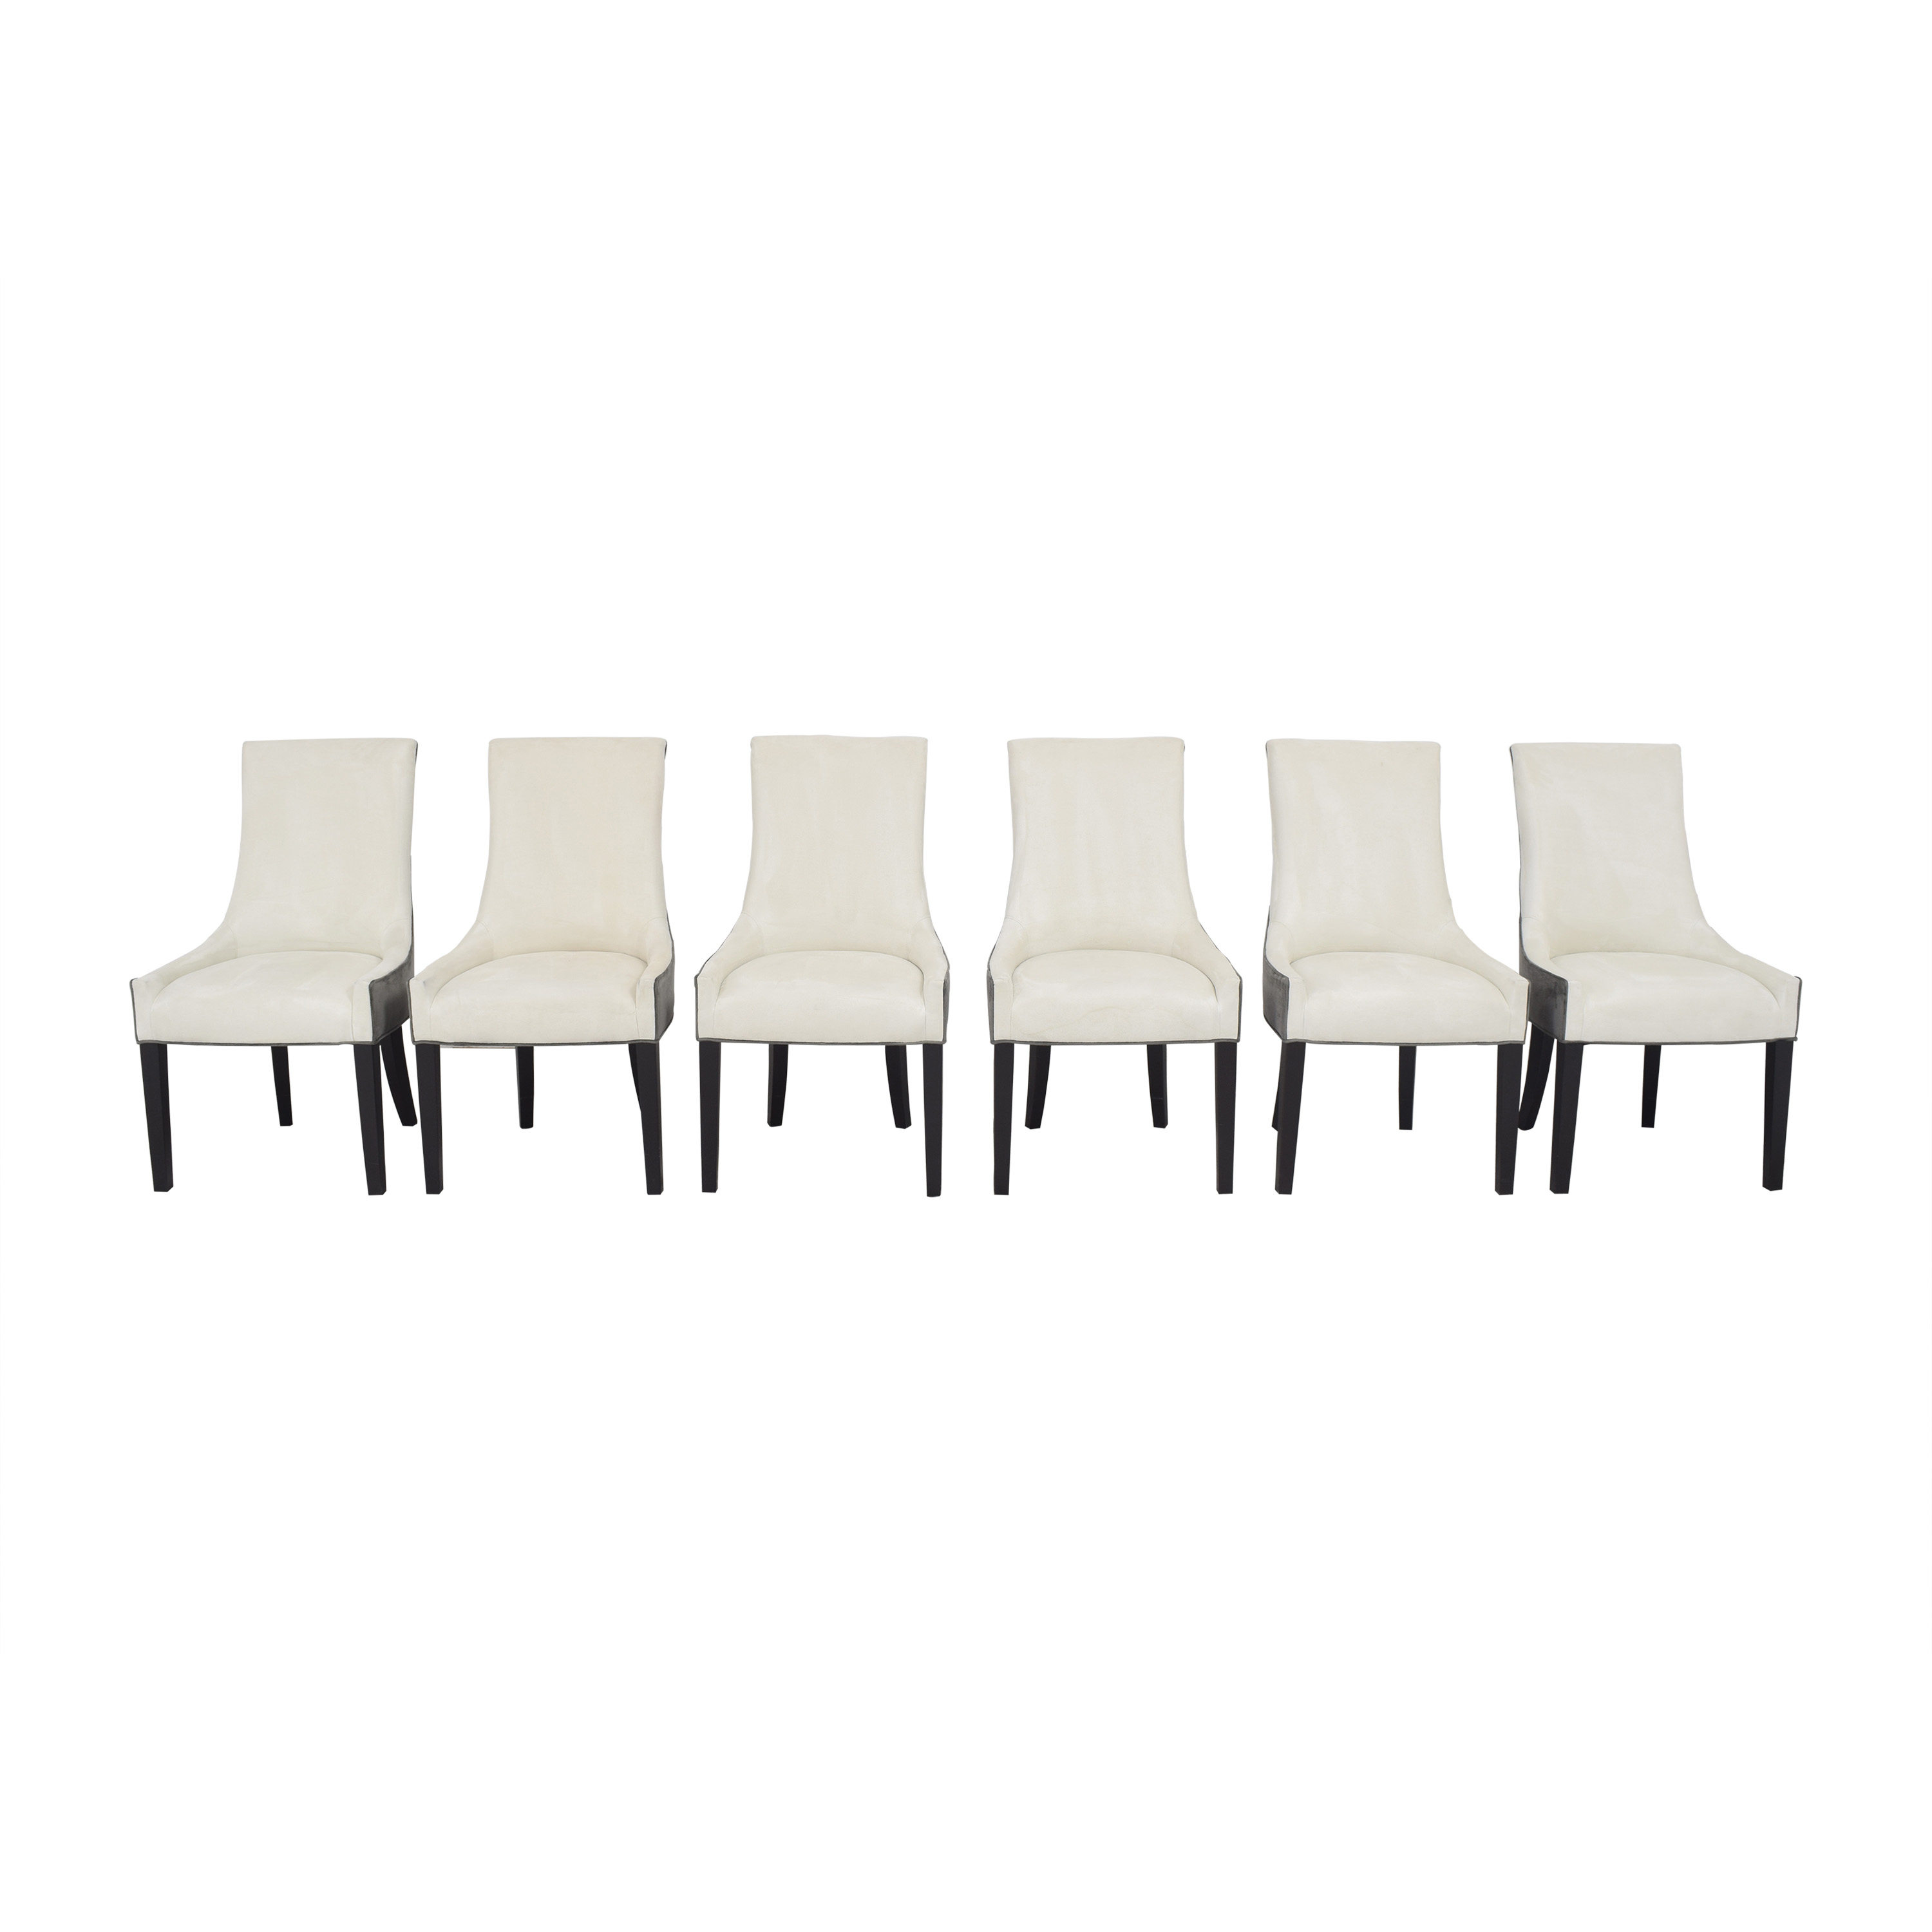 Mitchell Gold + Bob Williams Mitchell Gold + Bob Williams Ada Side Dining Chairs for sale